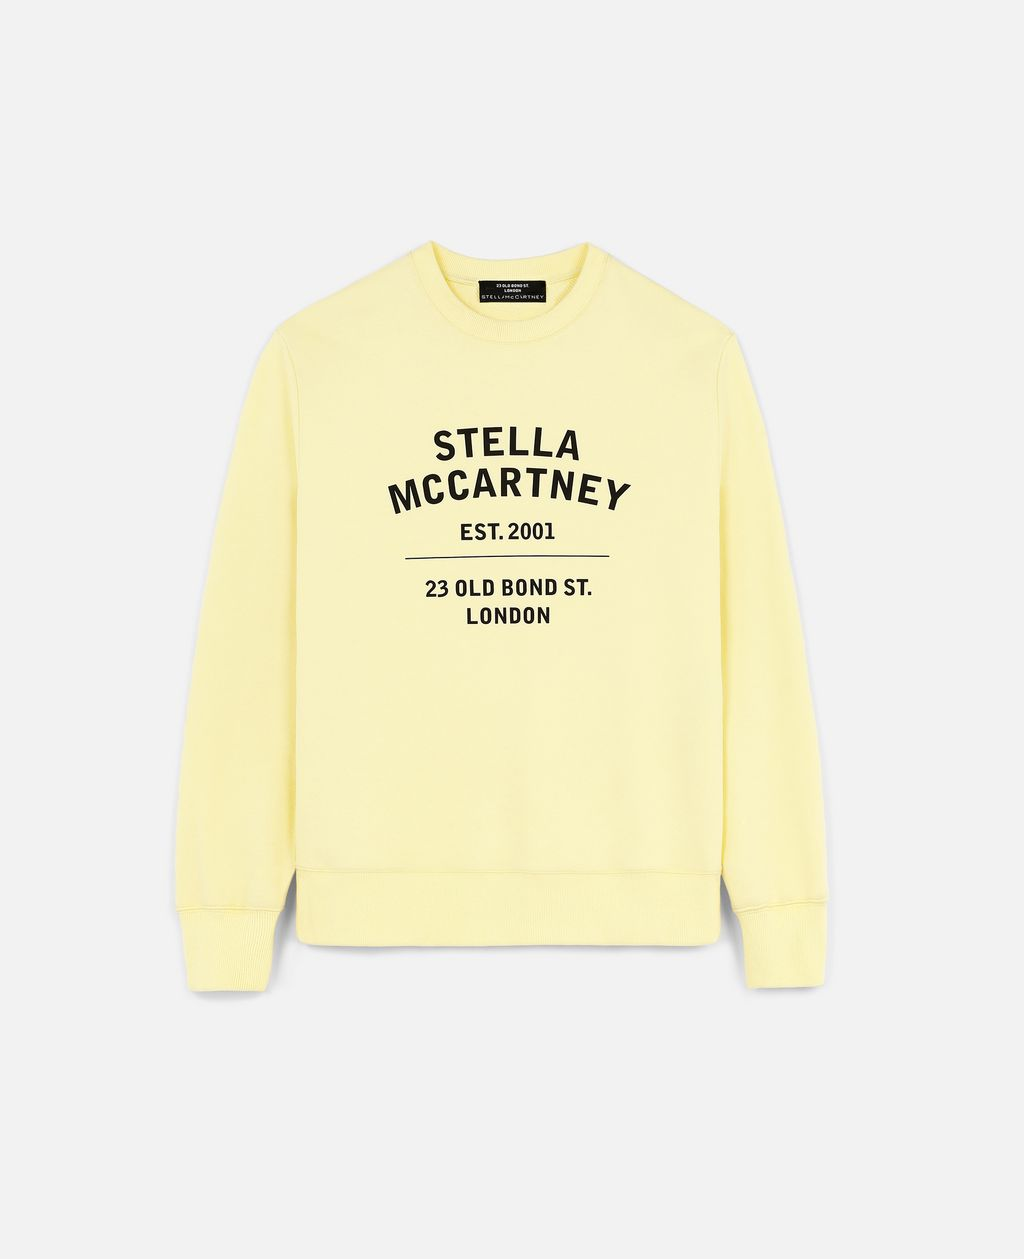 Stella Mccartney Cottons STELLA MCCARTNEY YELLOW 23 OBS ORGANIC COTTON SWEATSHIRT